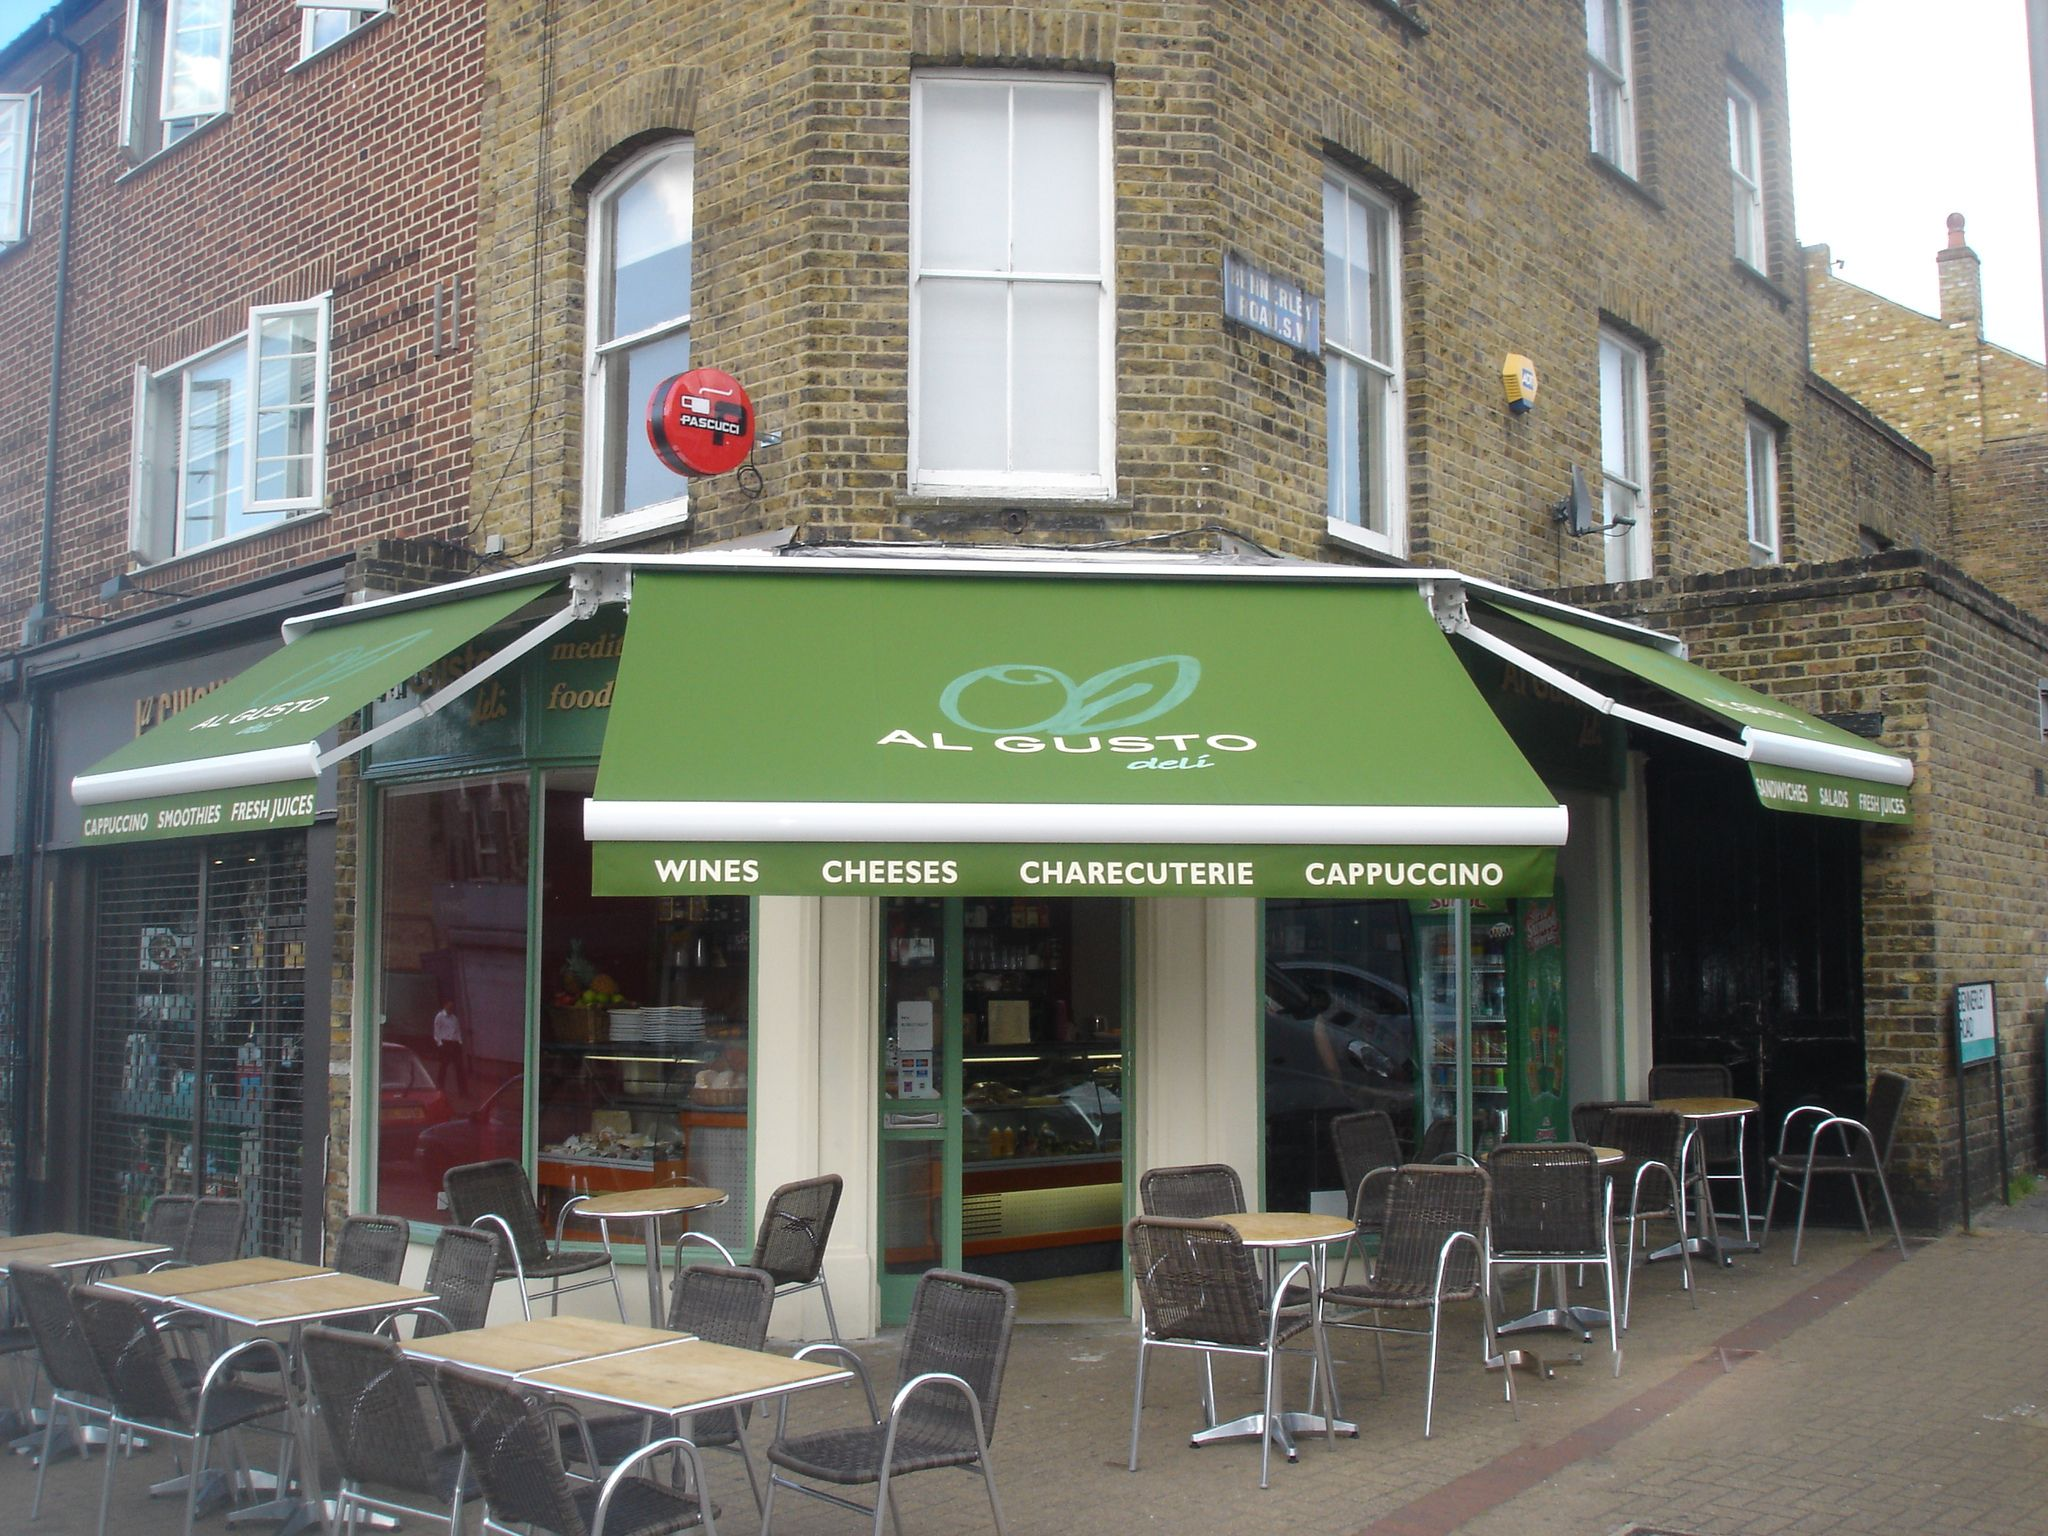 3 Retractable Awnings What Made A Restaurant Times Bigger Nicely Covered With Green Canvas